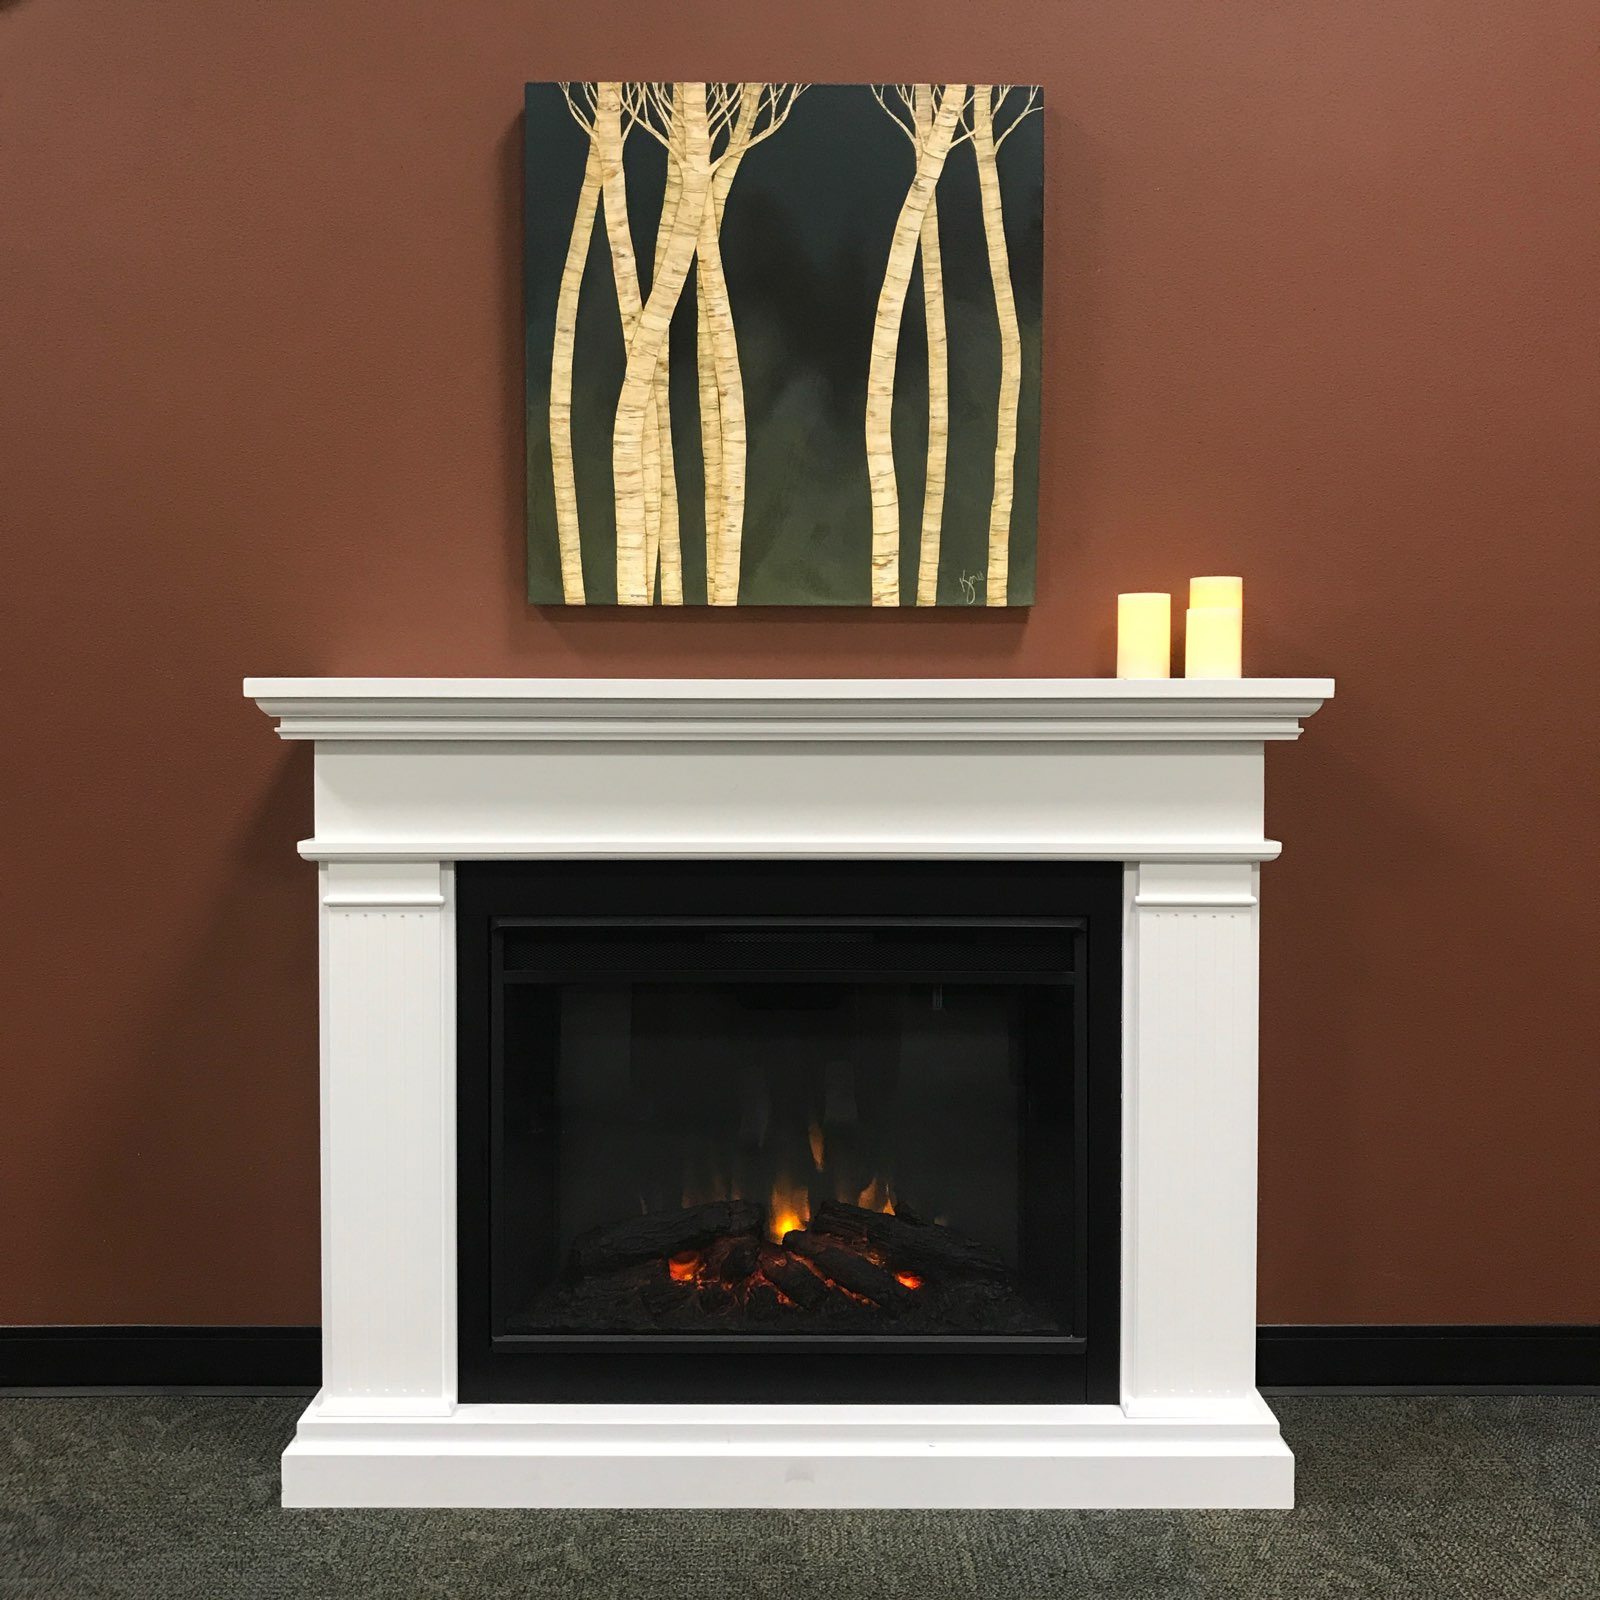 Library fireplace with birch tree painting above it.